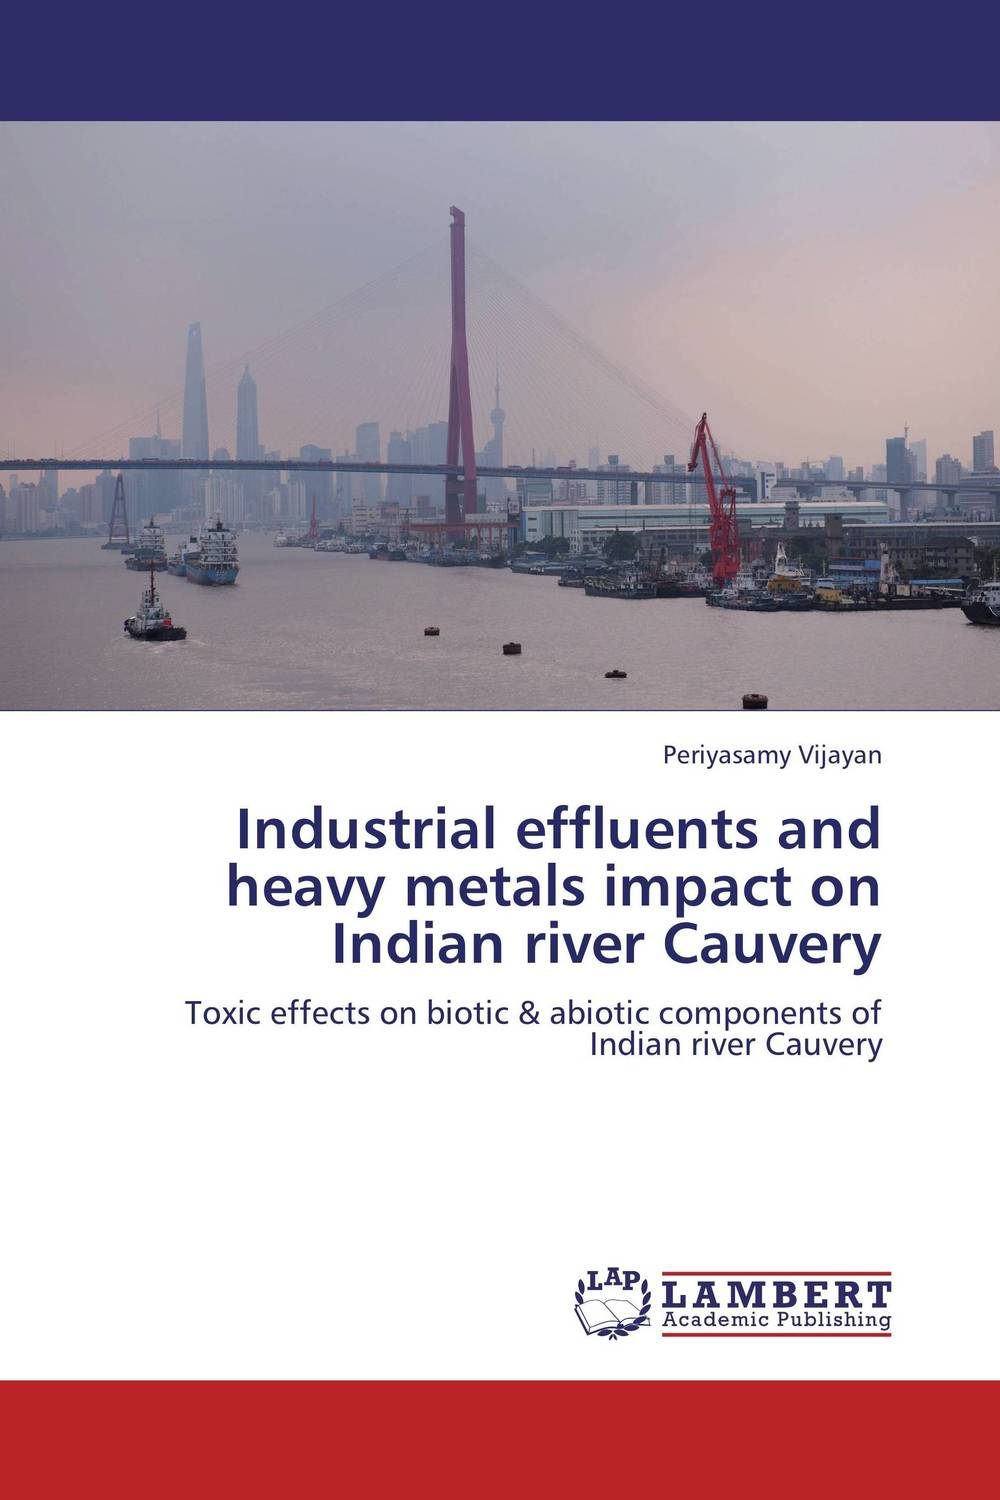 Industrial effluents and  heavy metals impact on Indian river Cauvery marwan a ibrahim effect of heavy metals on haematological and testicular functions